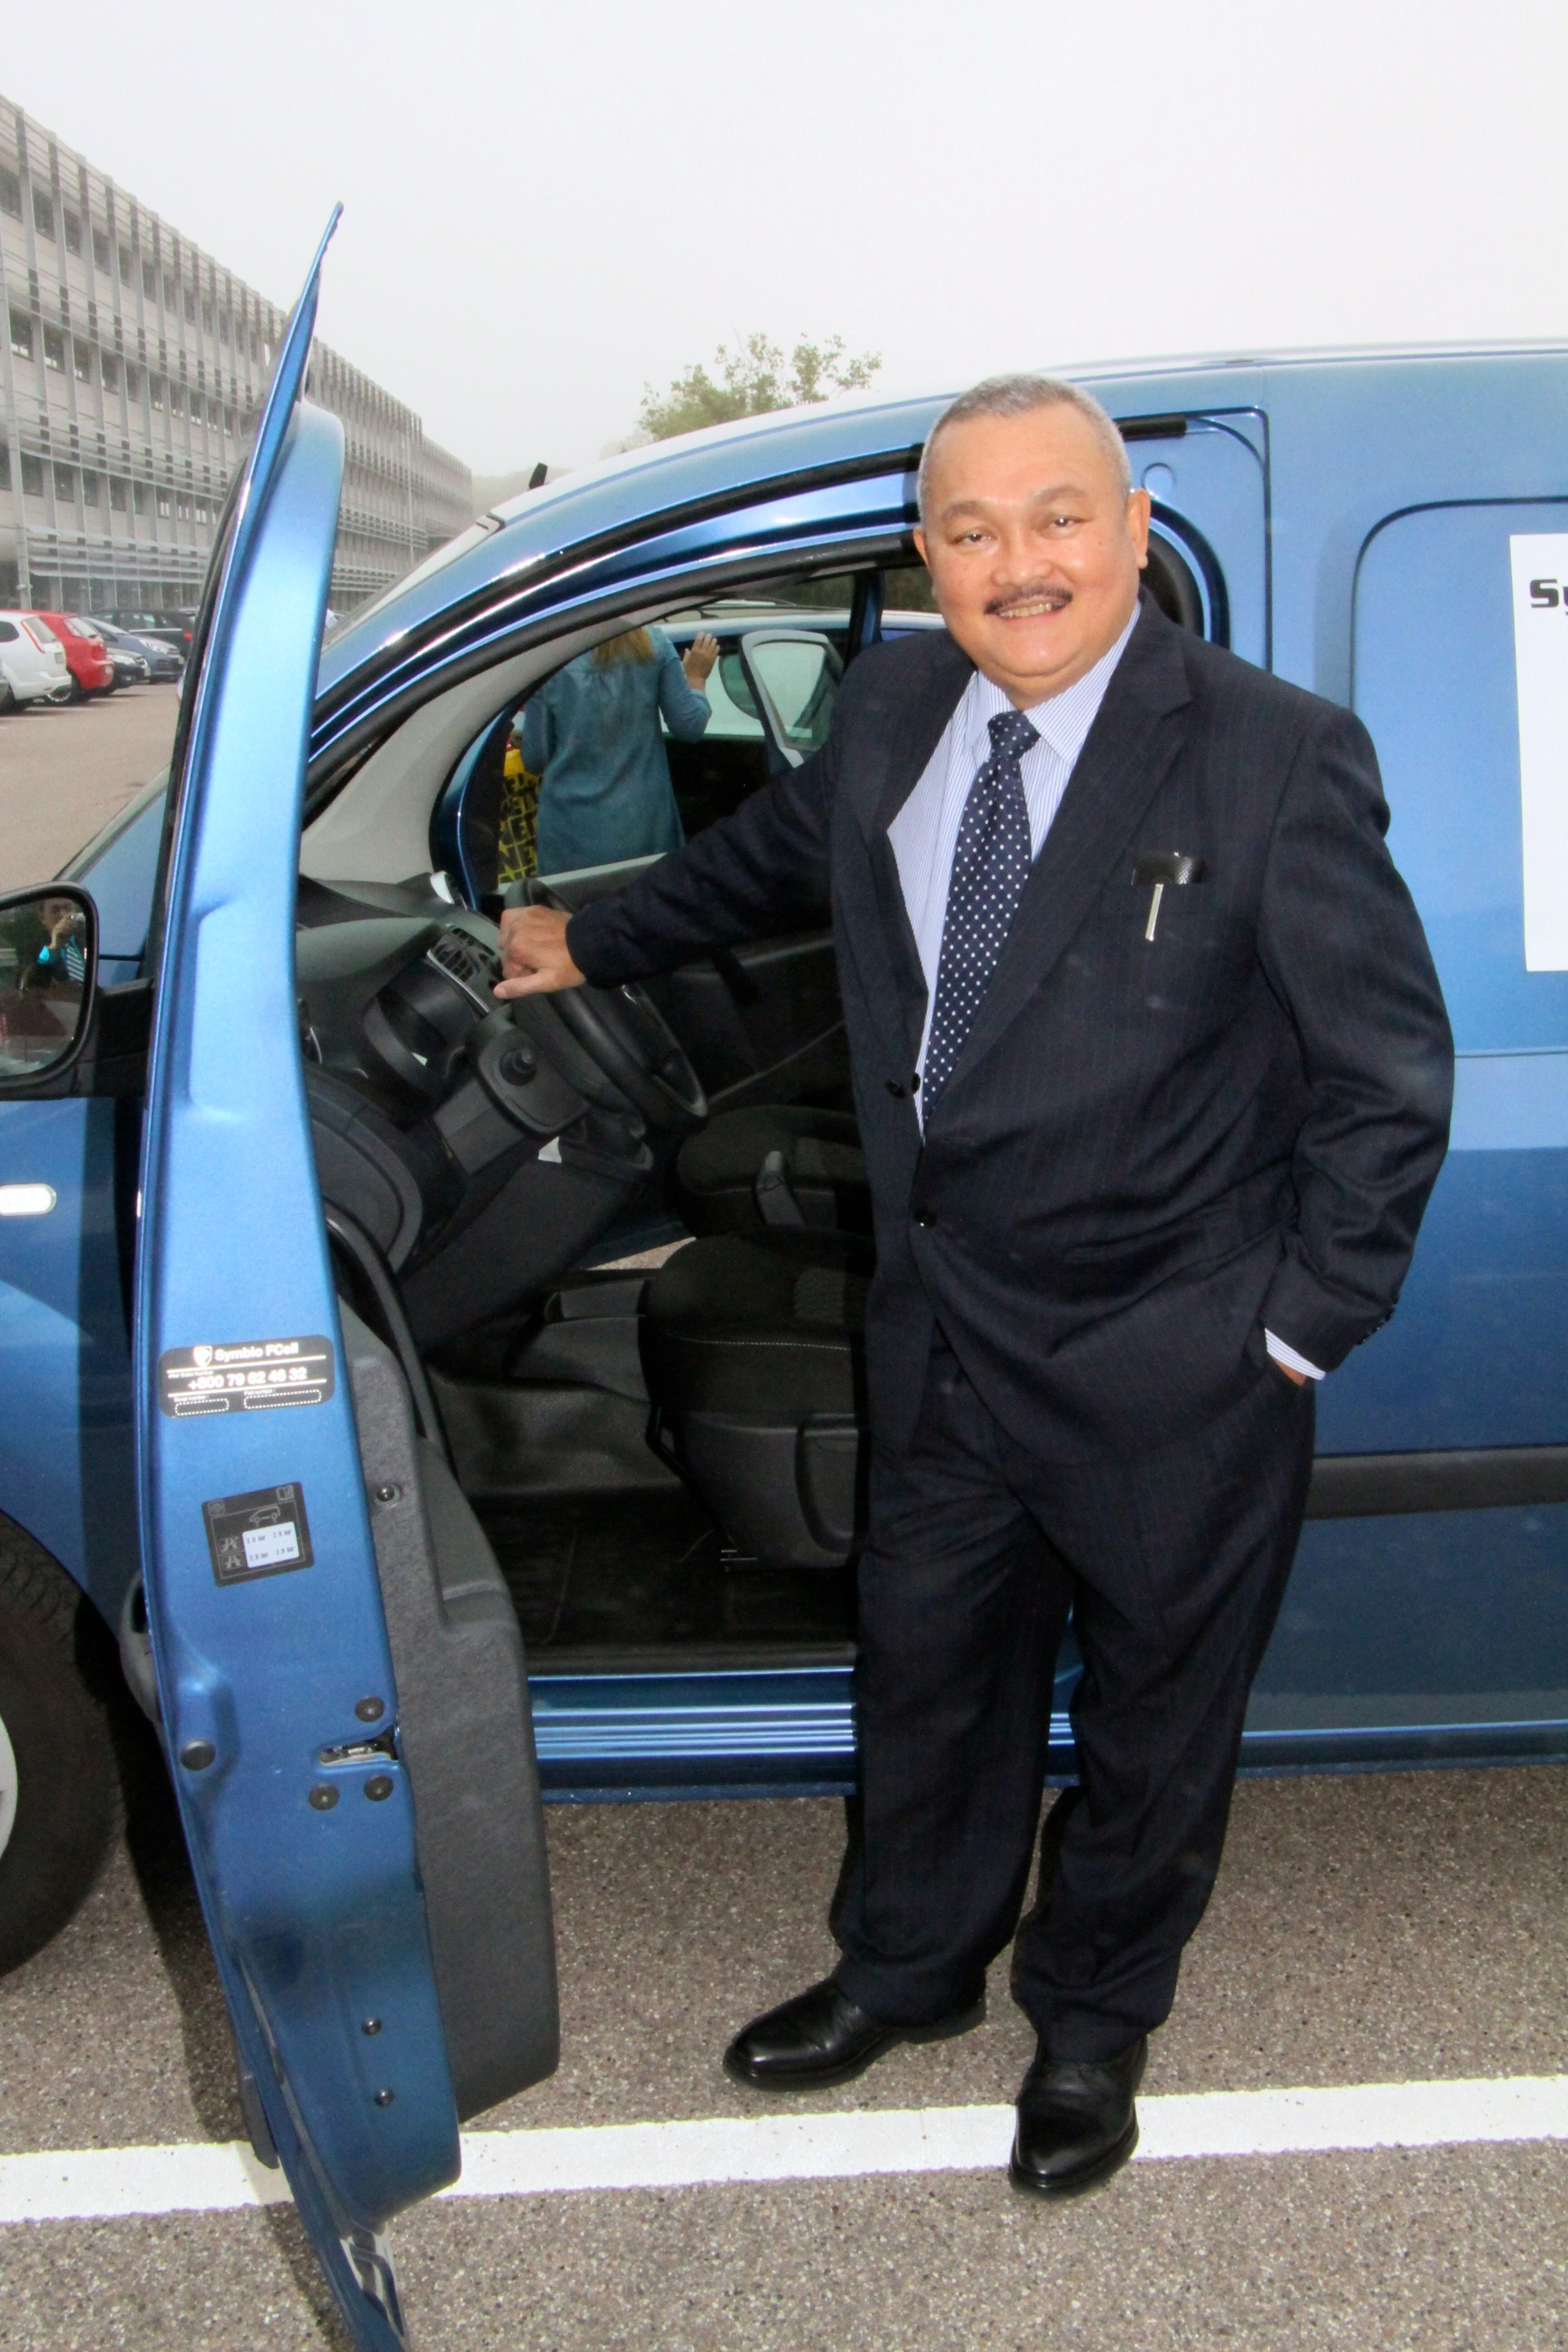 Governor of Sumatra with hydrogen fuel cell vehicle in Denmark